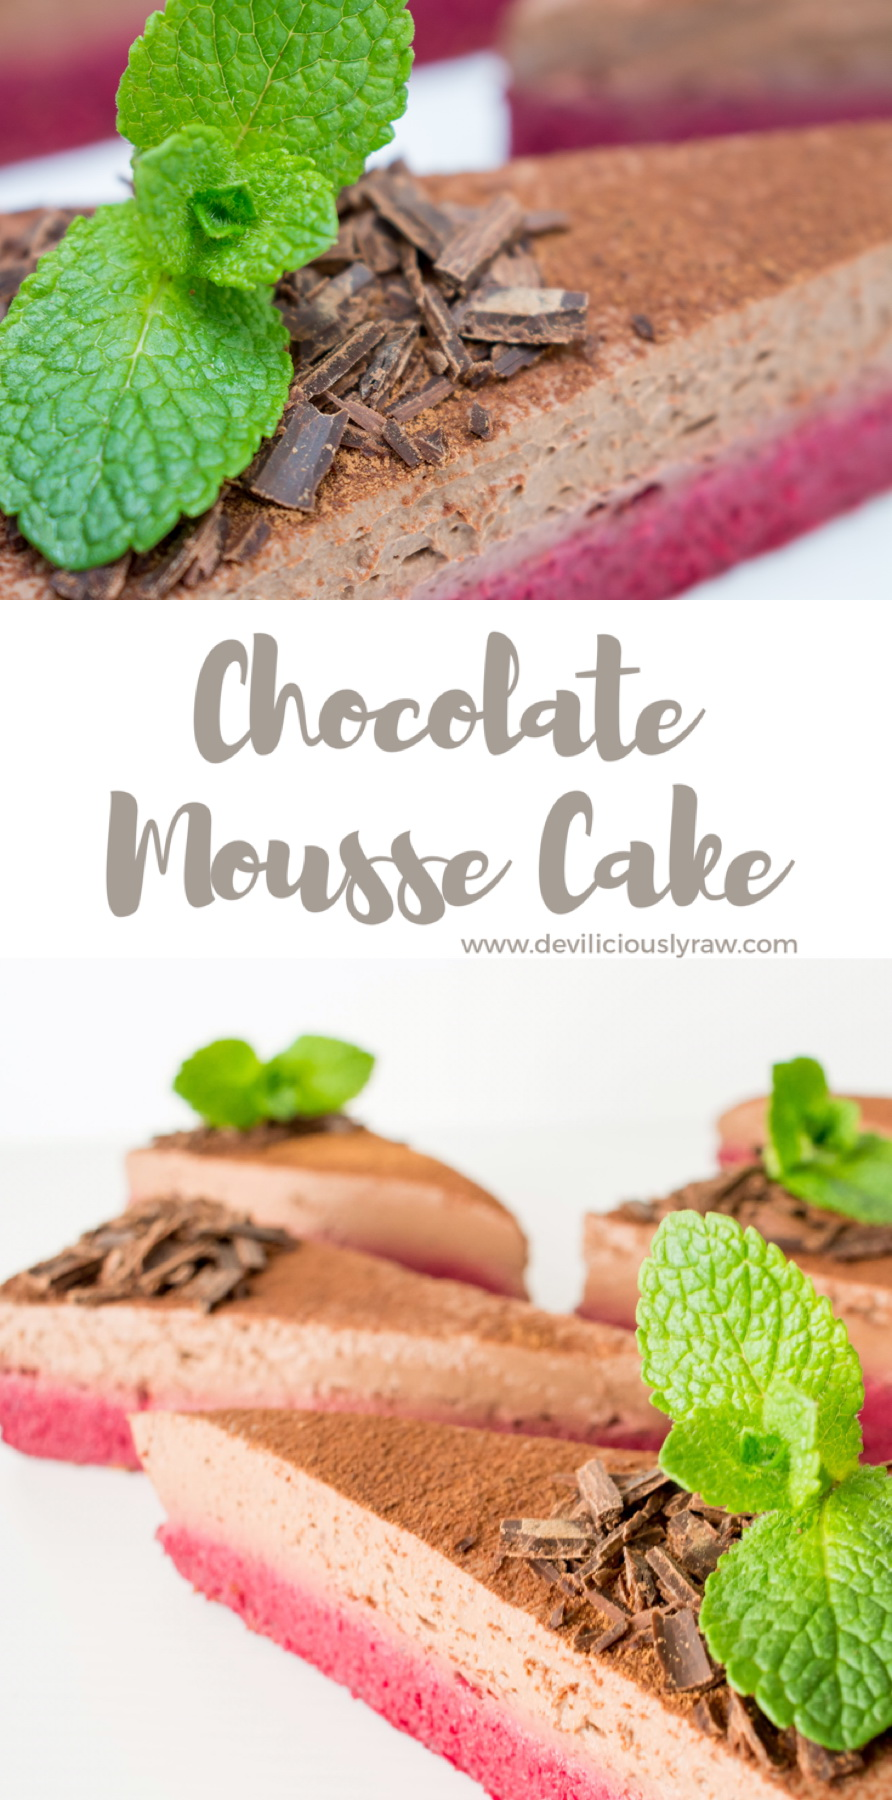 Beetroot & Chocolate Mousse Cake